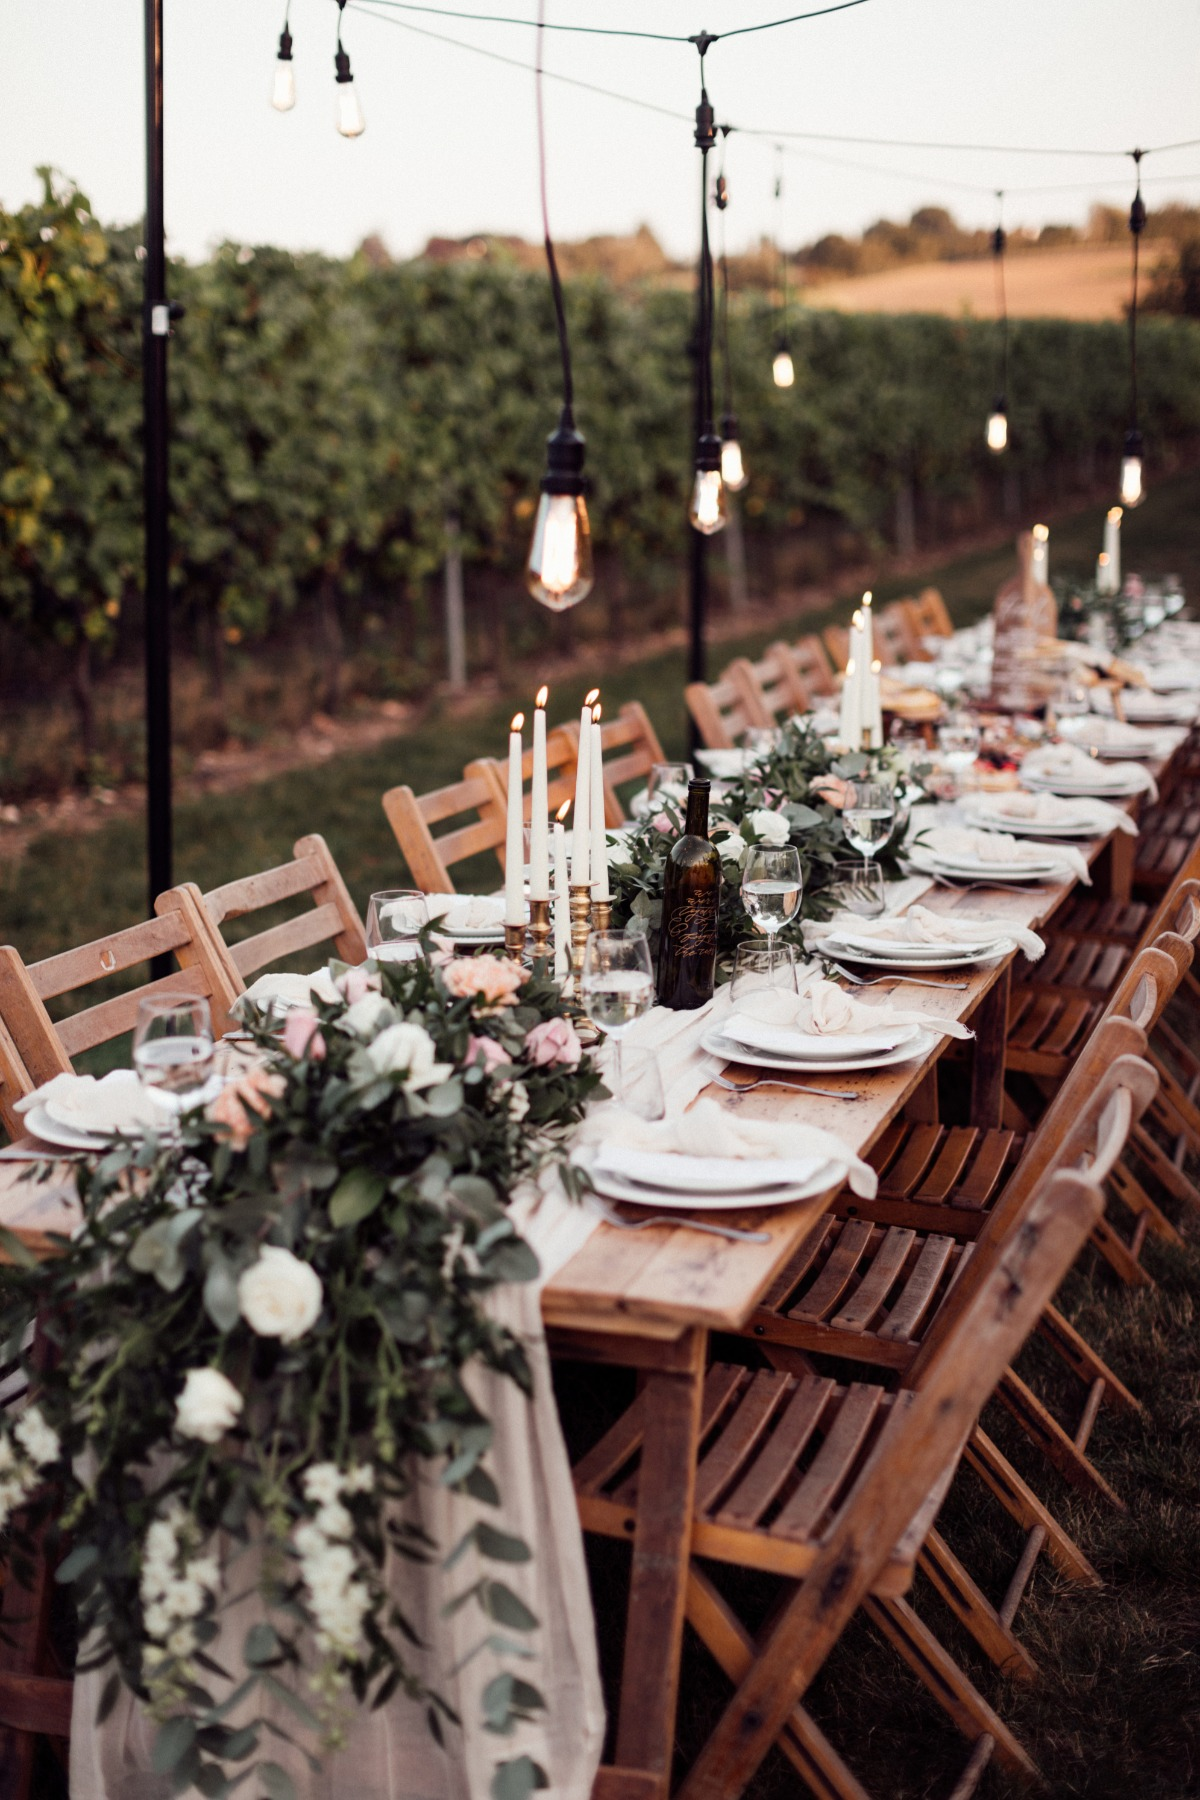 Tuscan Vineyard themed micro wedding with vineyard tablescape and barn ceremony.